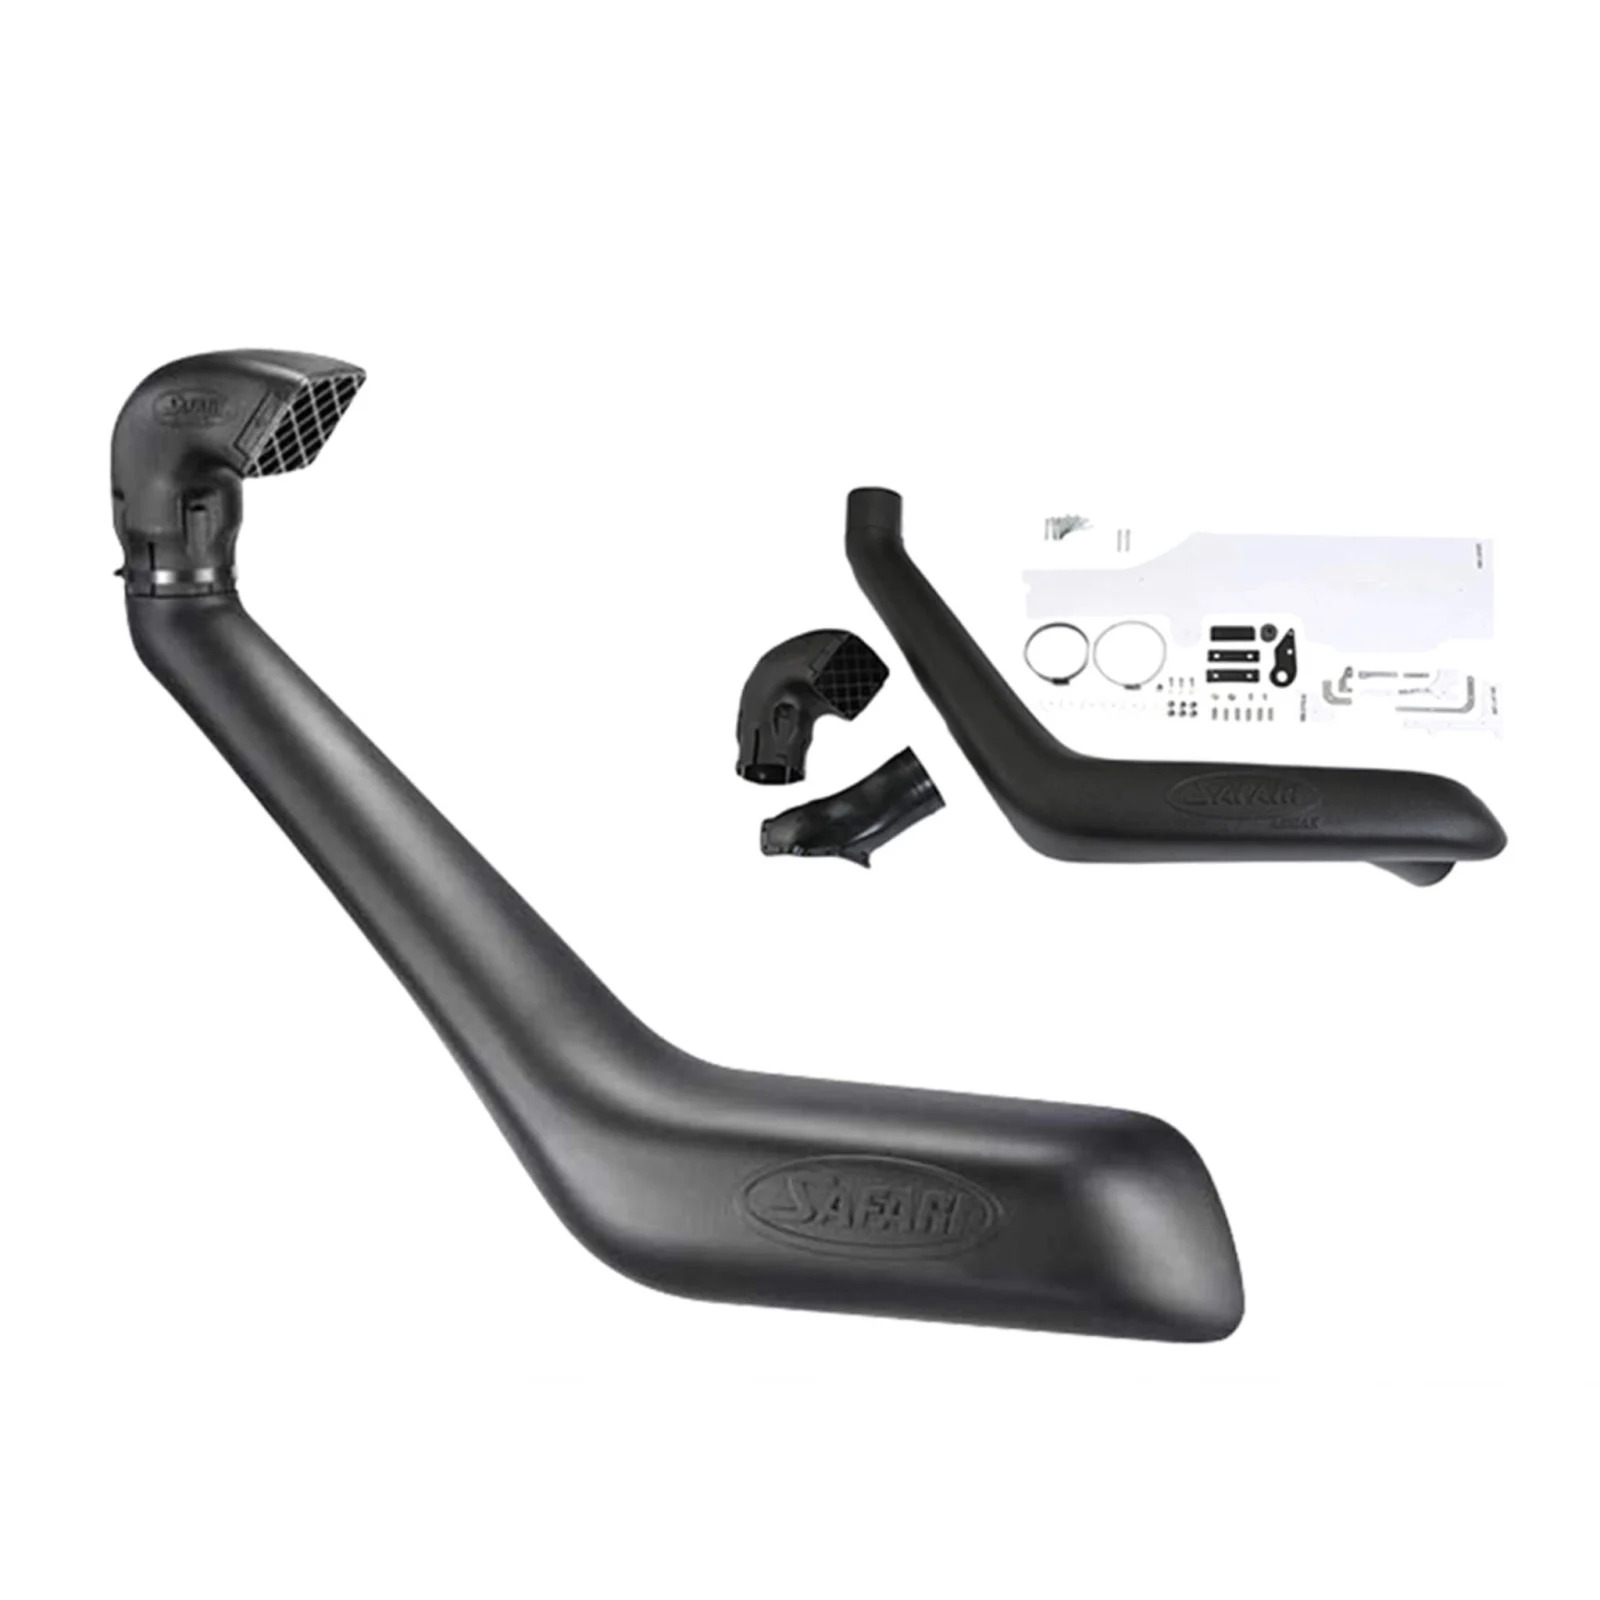 SAFARI SNORKEL ARMAX TOYOTA HILUX 1KD-FTV 3.0L TURBO DIESEL 10/11 ONWARDS SS122HP image